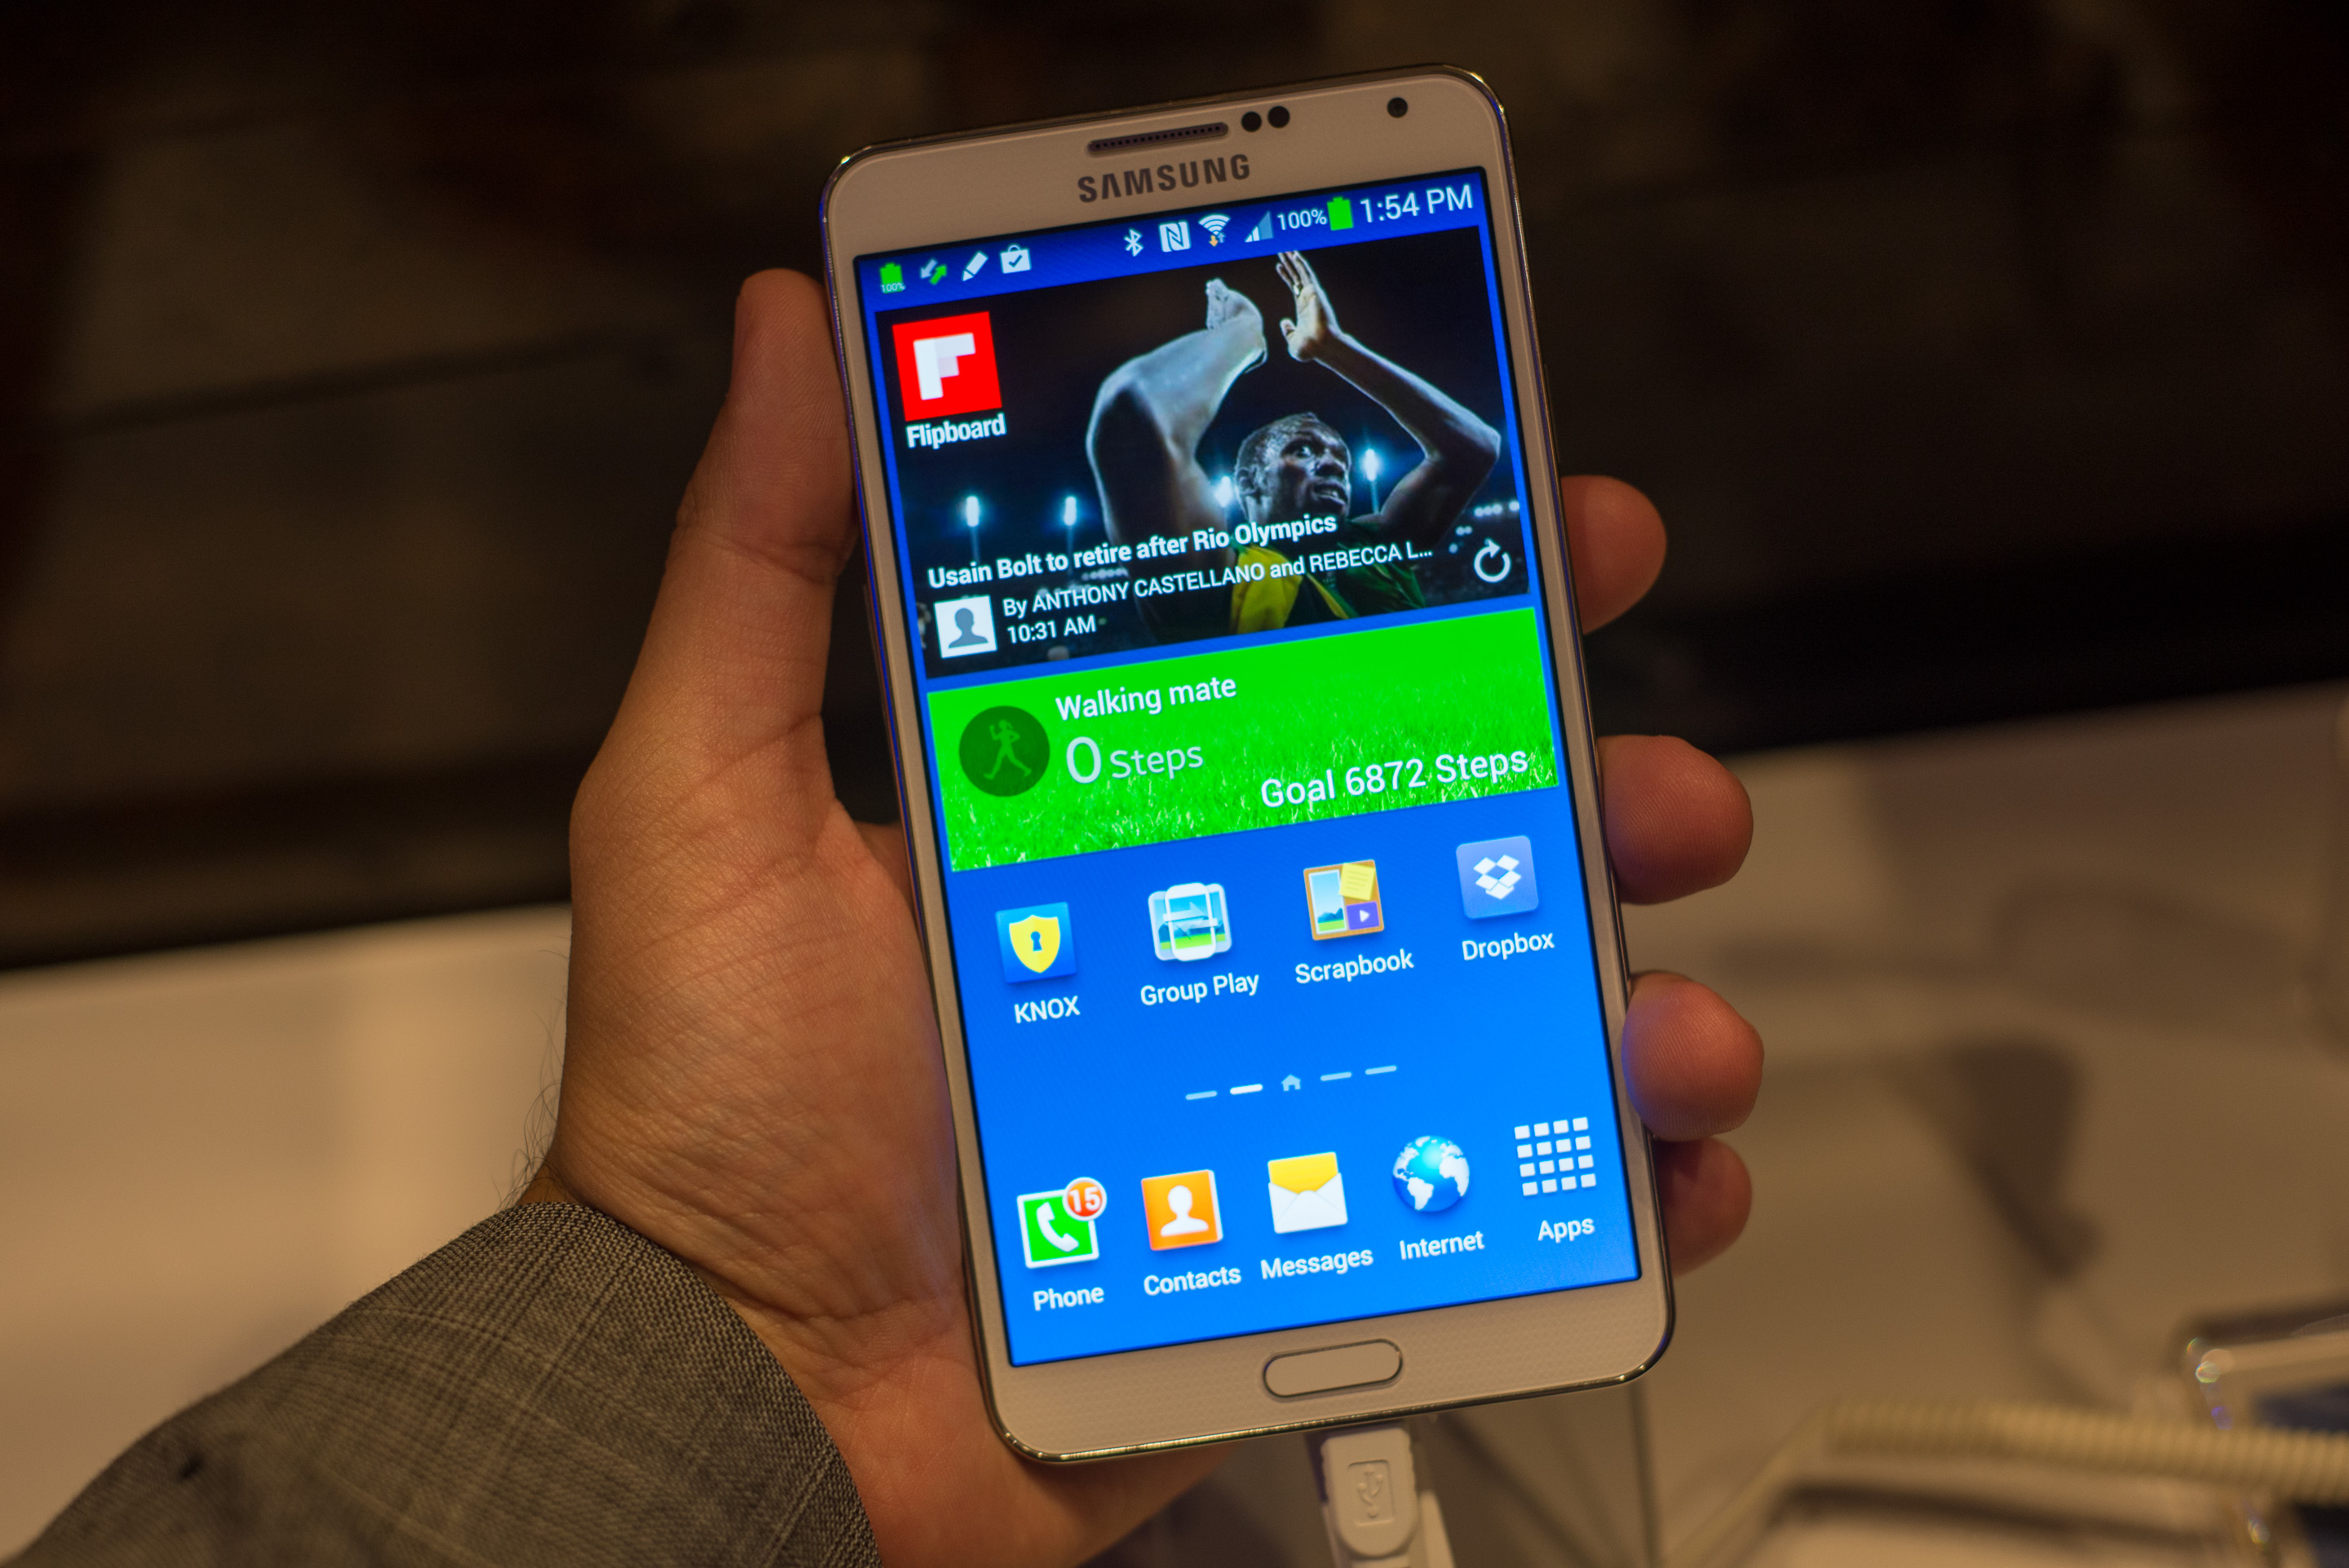 How to use scrapbook on note 3 - How To Use Scrapbook On Note 3 5